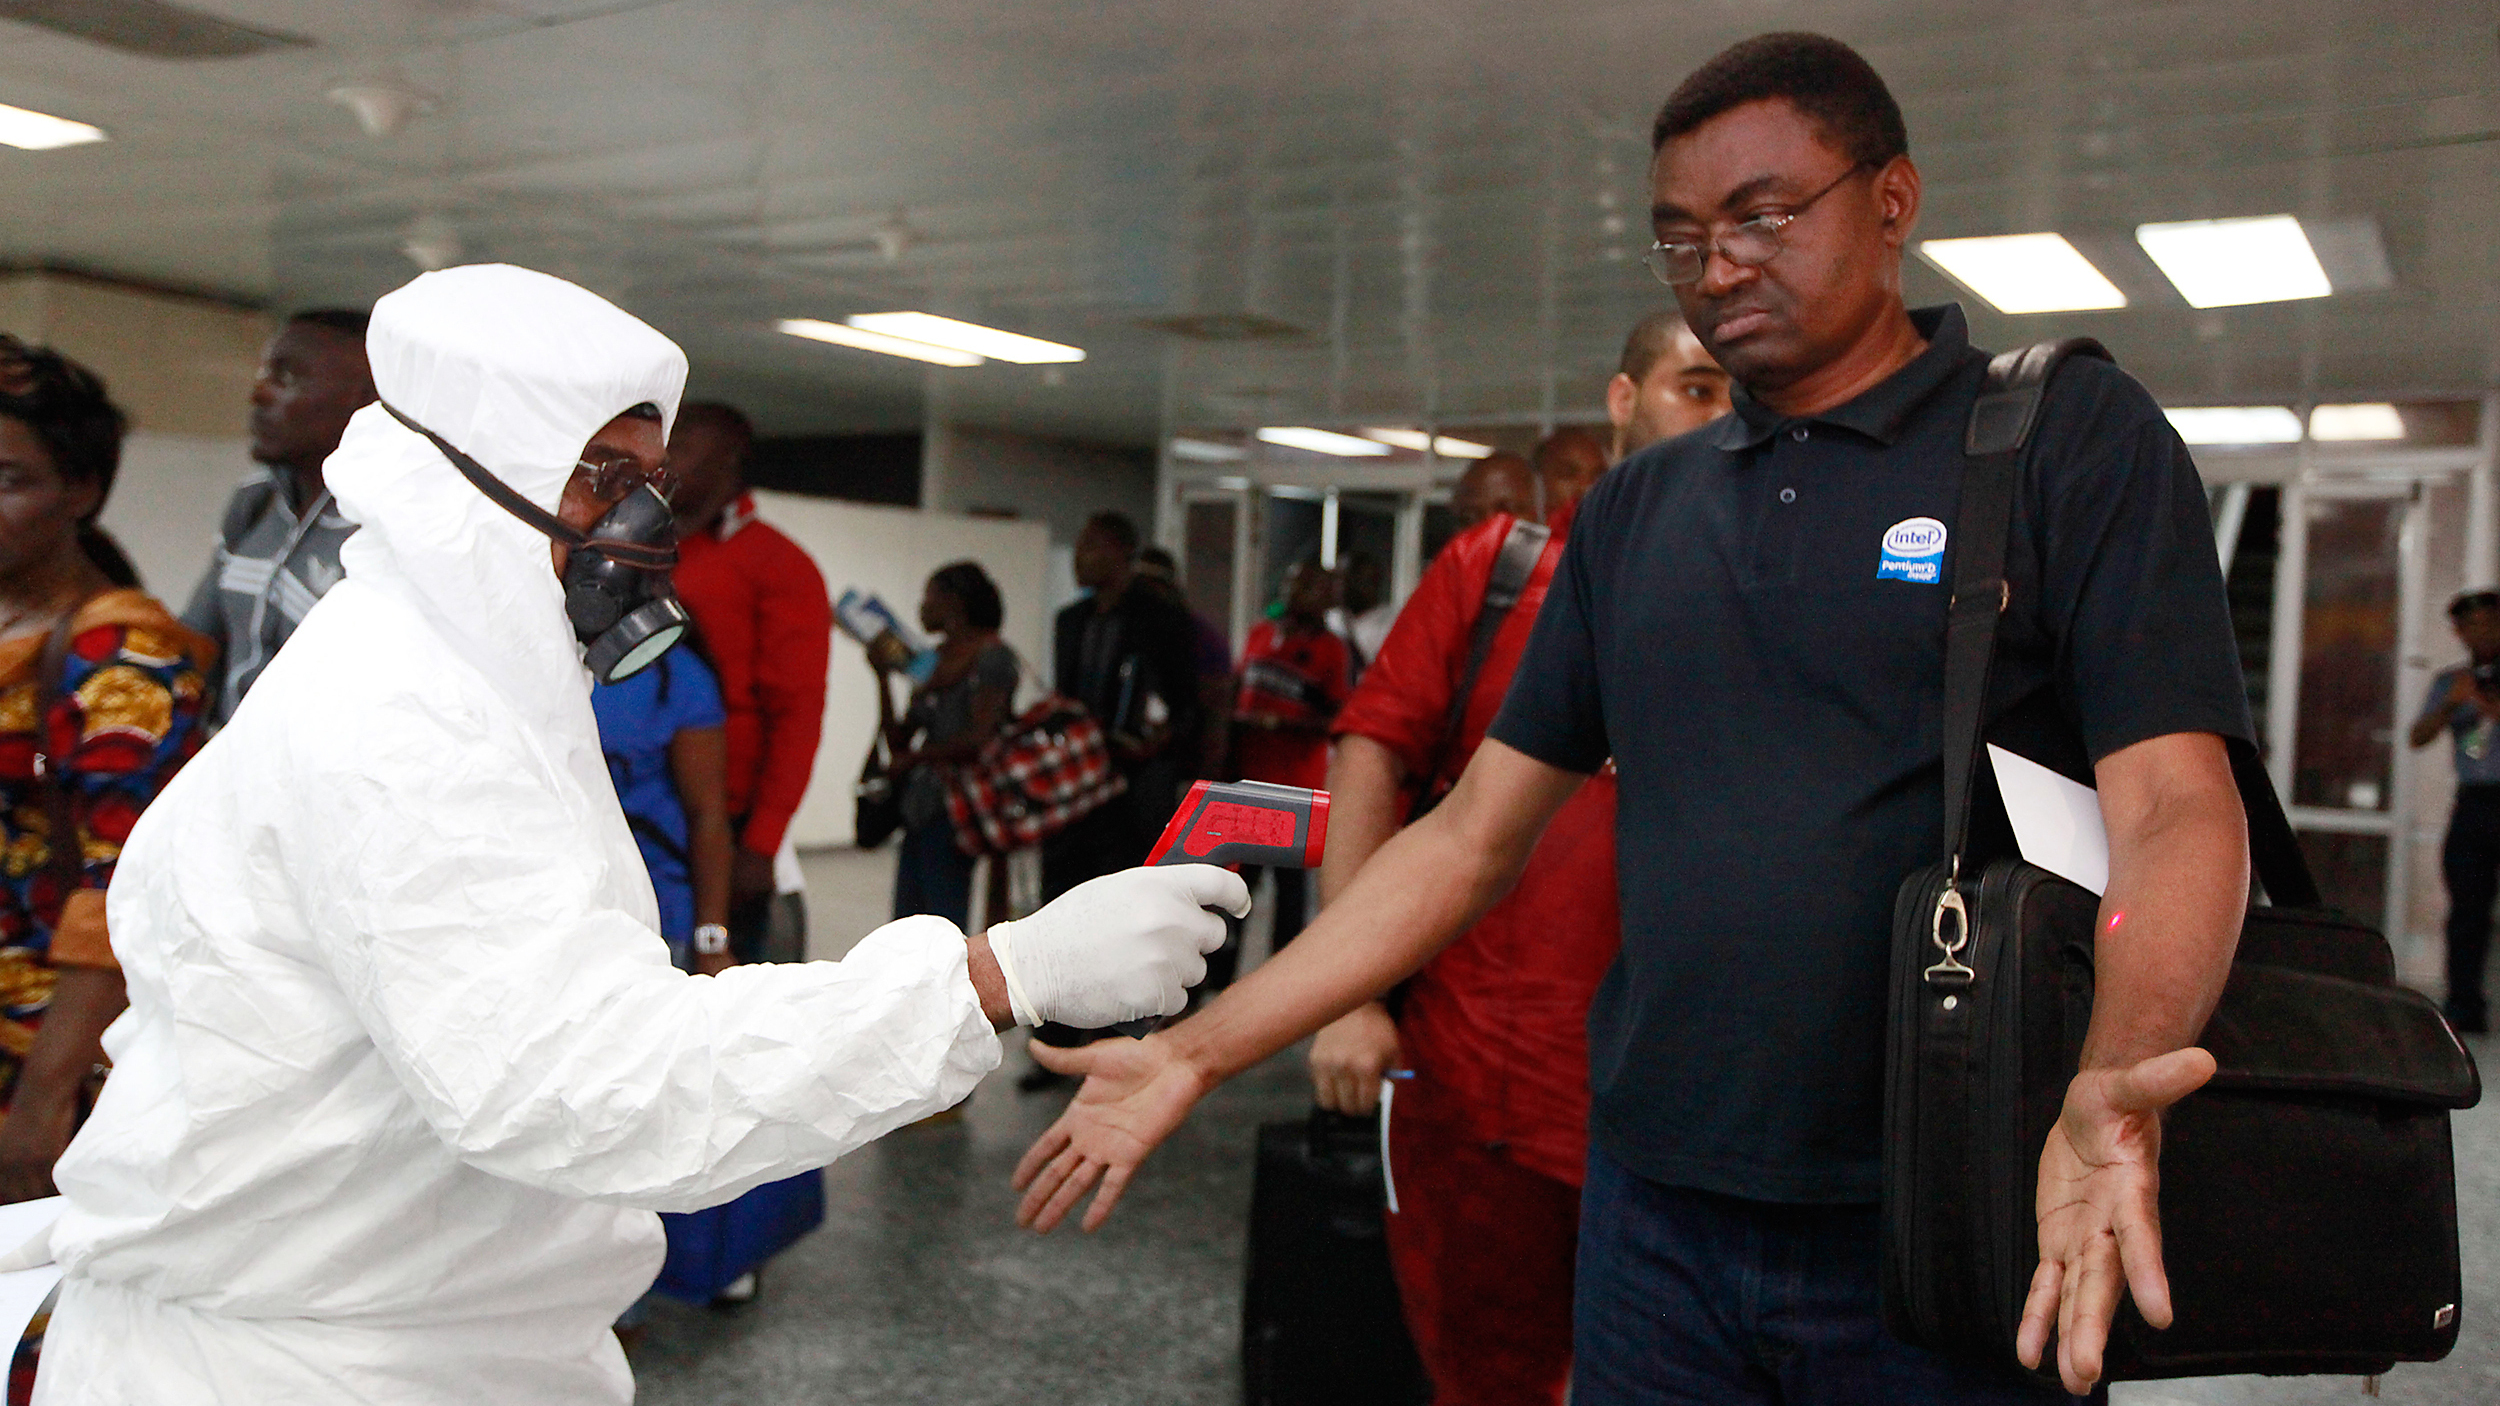 Why One Public Health Expert Thinks Airport Ebola Screening Won't Work